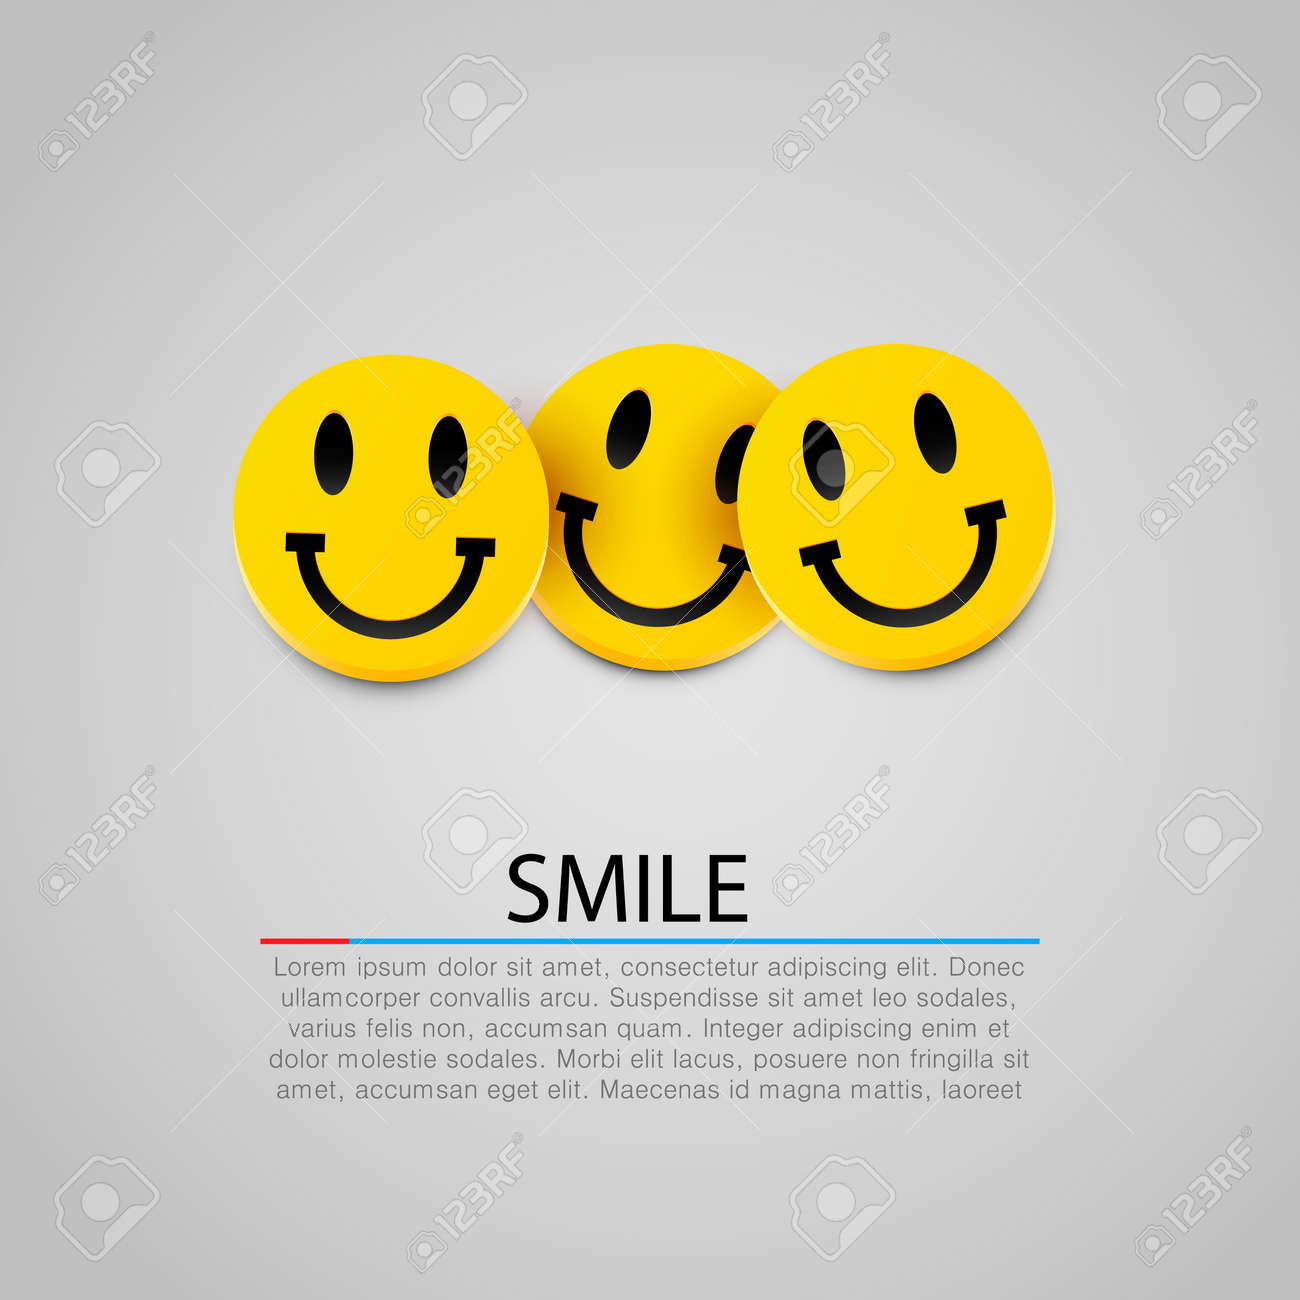 Modern yellow laughing three smiles. Vector illustration Standard-Bild - 46955351